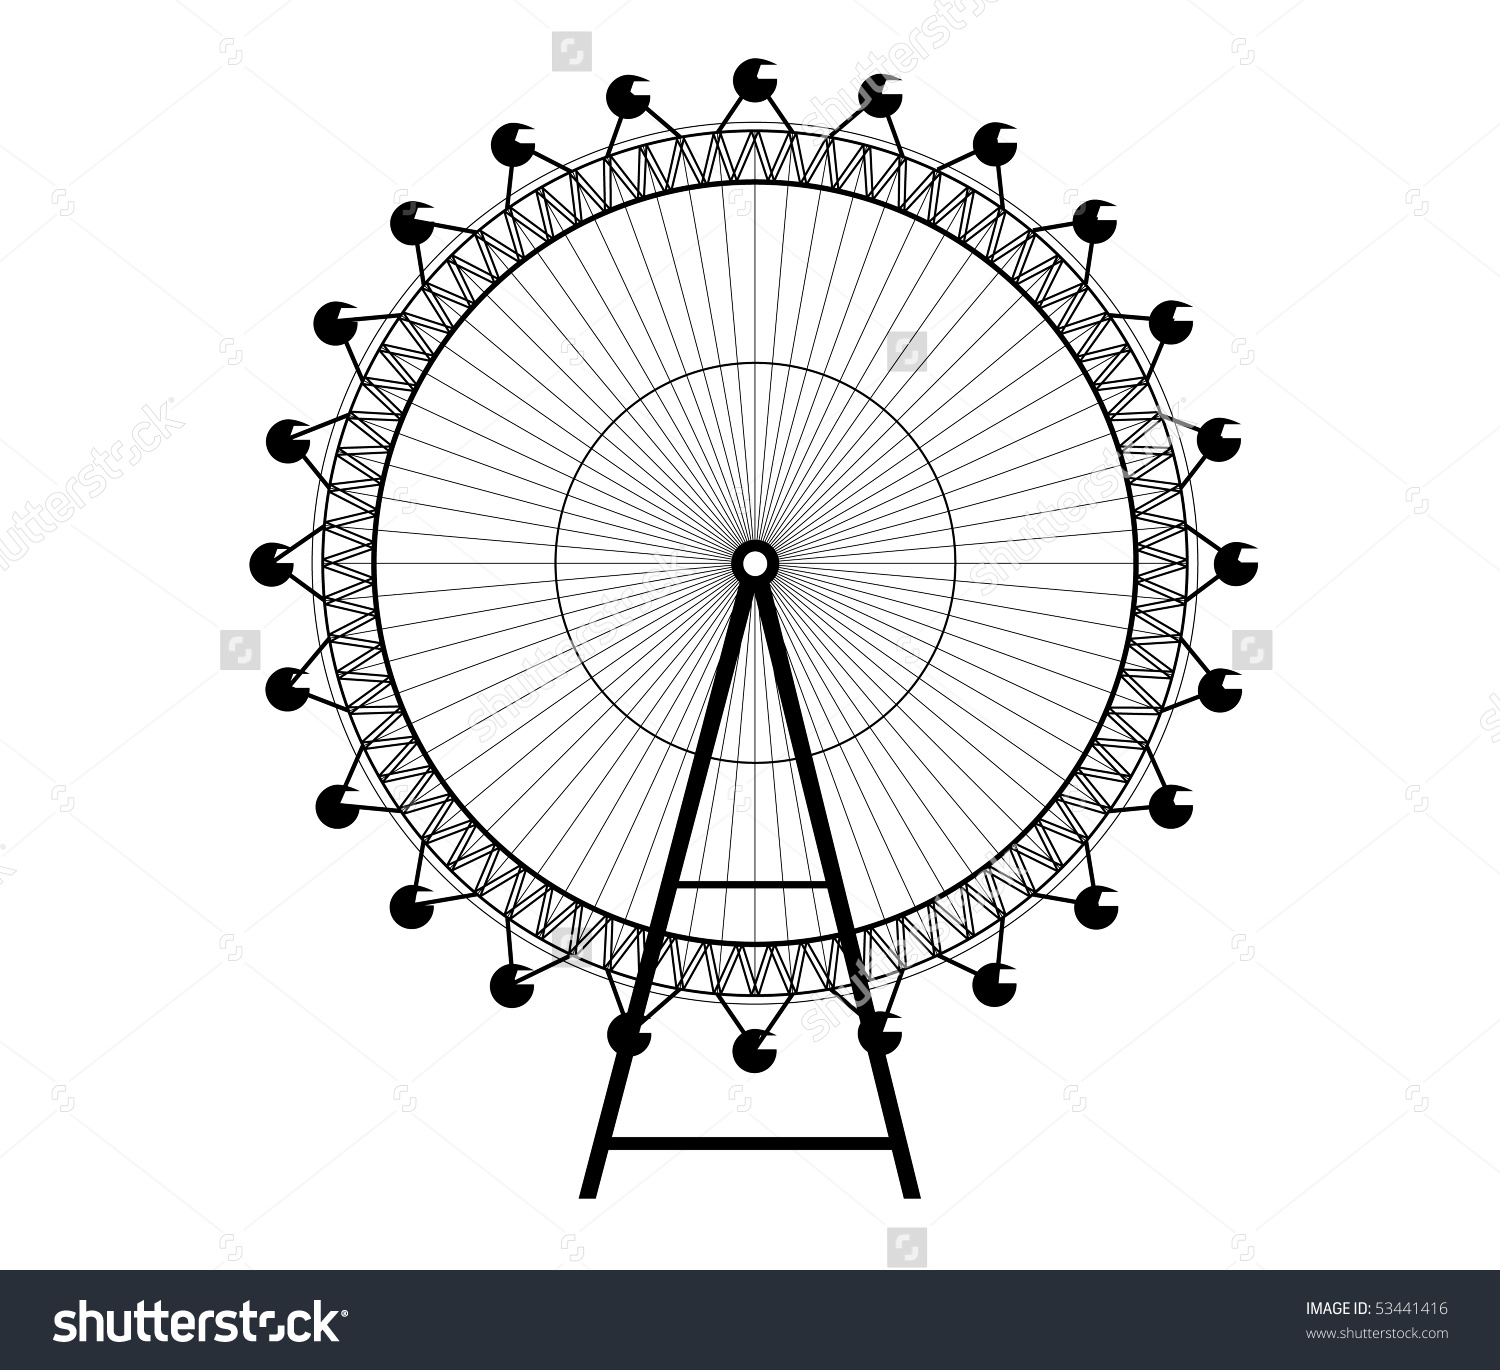 Ferris Wheel Big Wheel Vector Stock Vector 53441416.